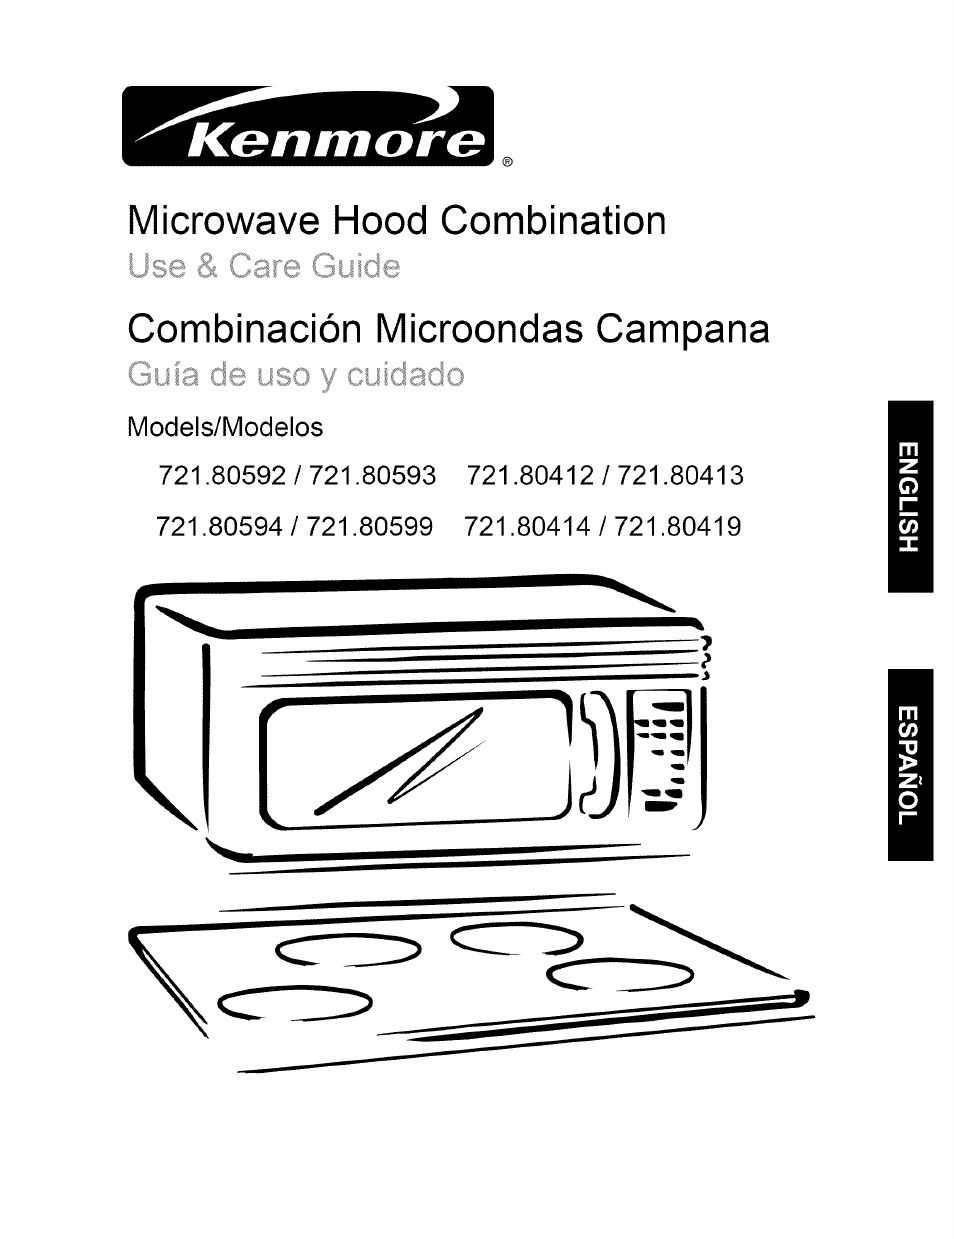 Kenmore 721.80594 User Manual | 33 pages | Also for: 721.80419, 721.80599,  721.80413, 721.80414, 721.80593, 721.80412, 721.80592